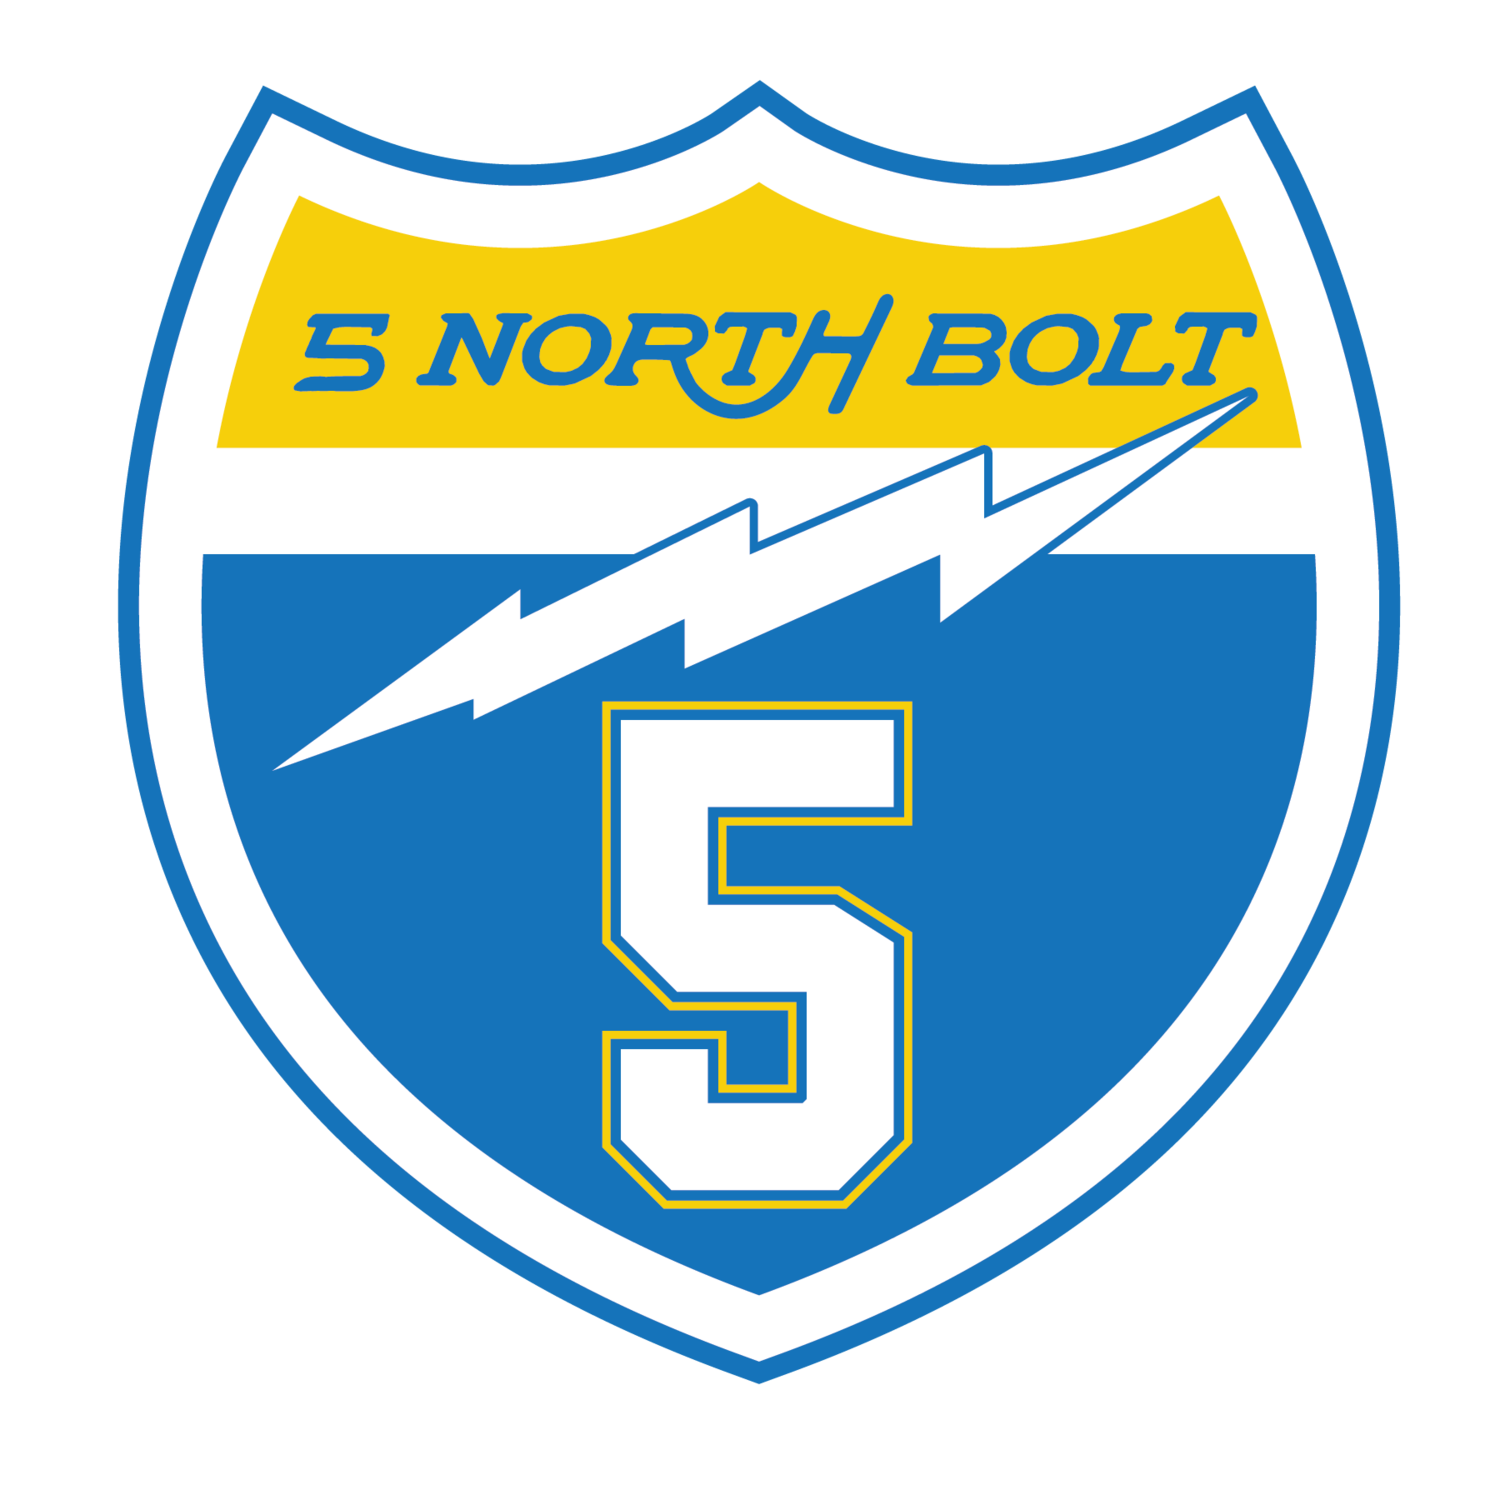 5 North Bolt